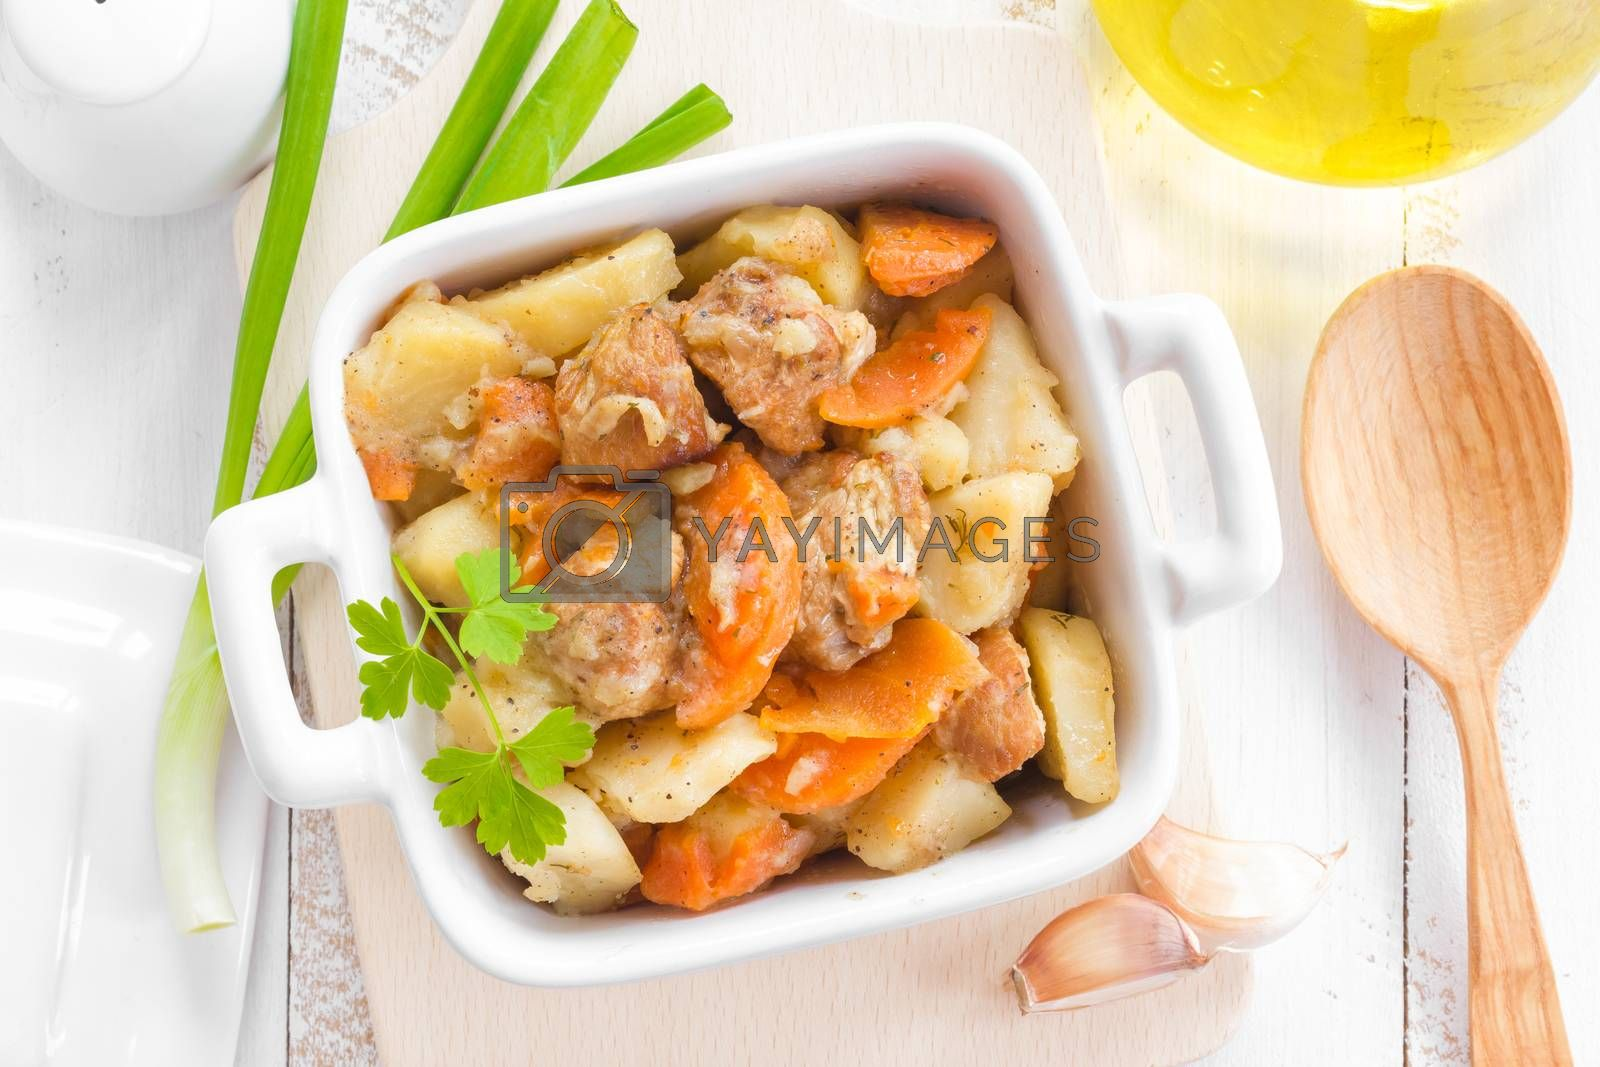 Royalty free image of Meat with vegetables by yelenayemchuk